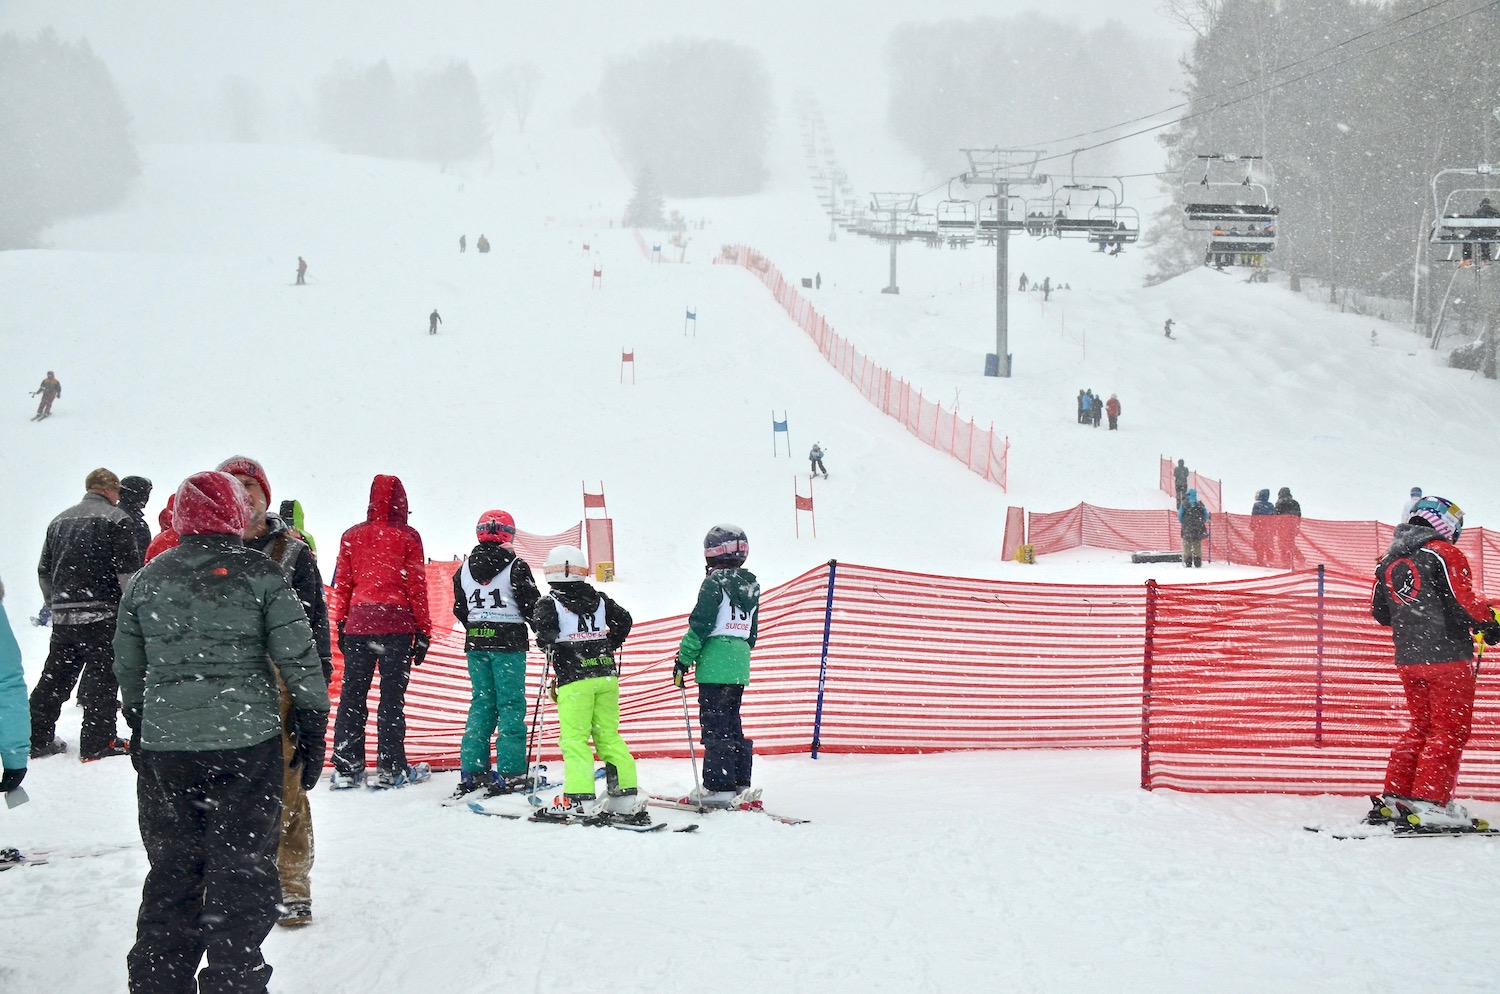 The race course and the moguls course were side by side - easy viewing for all the spectators.